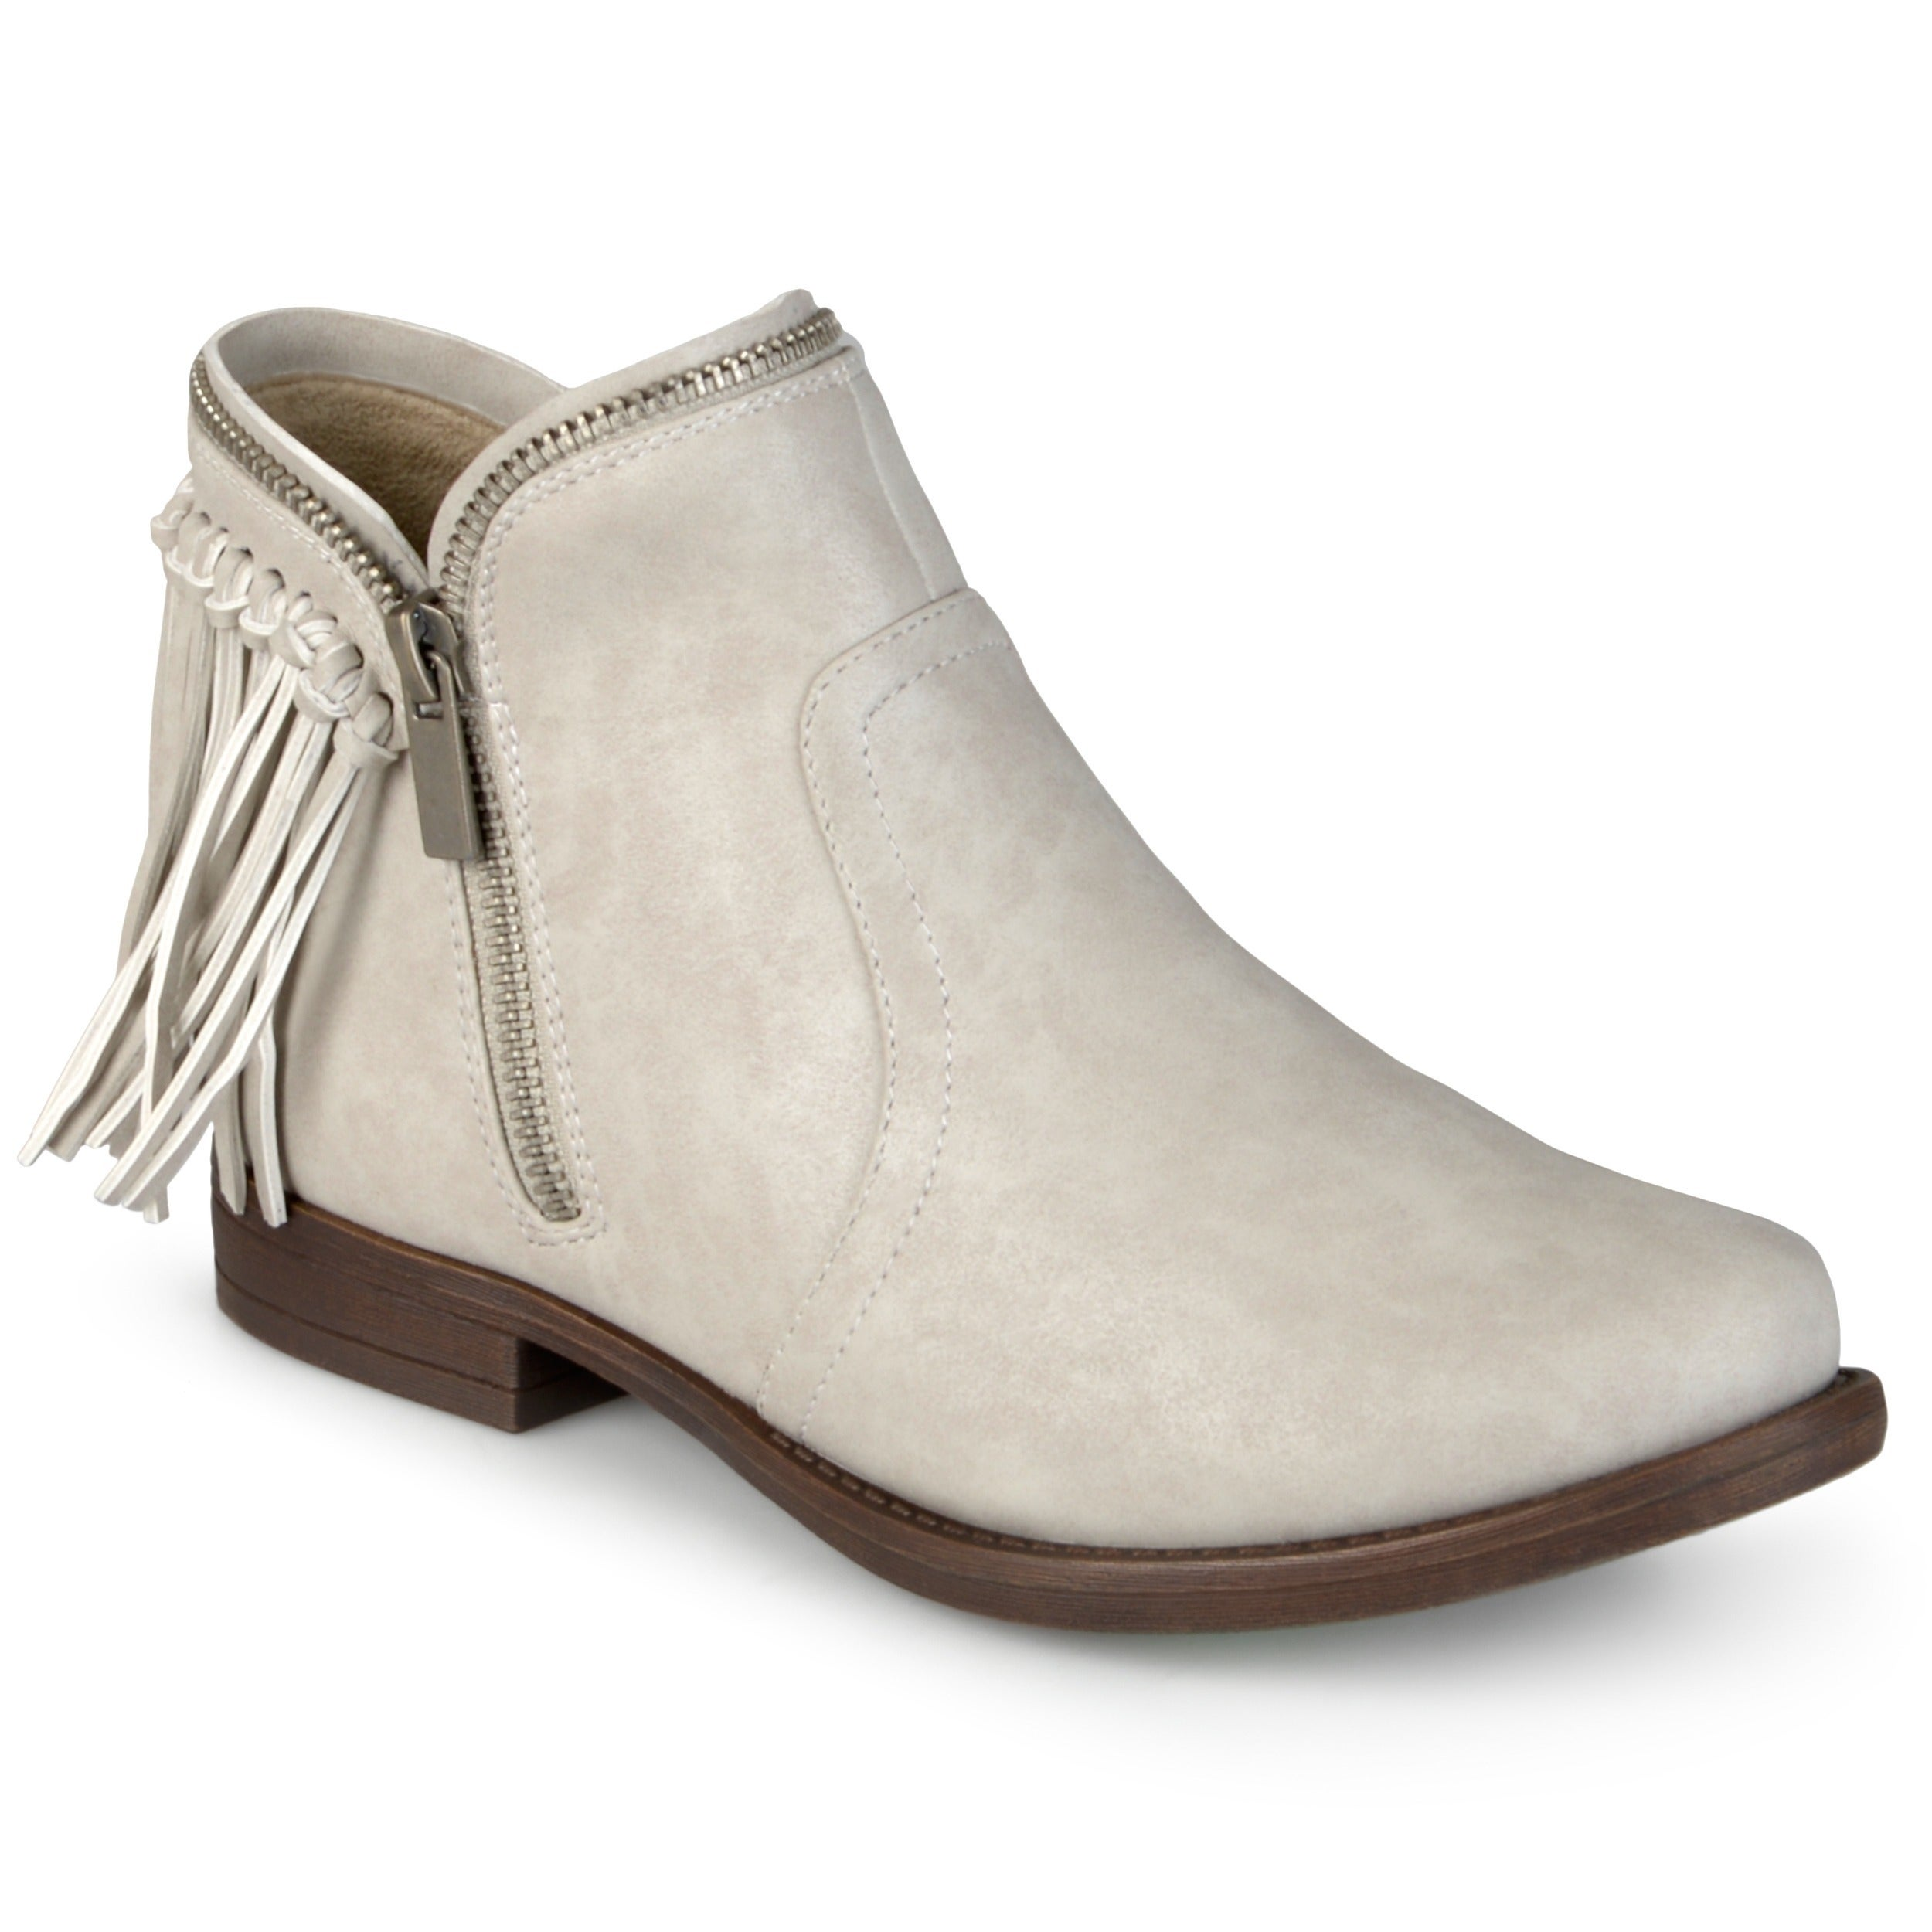 a6463db6534c86 Shop Journee Collection Women's 'Fringe' Almond Toe Fringed Booties ...